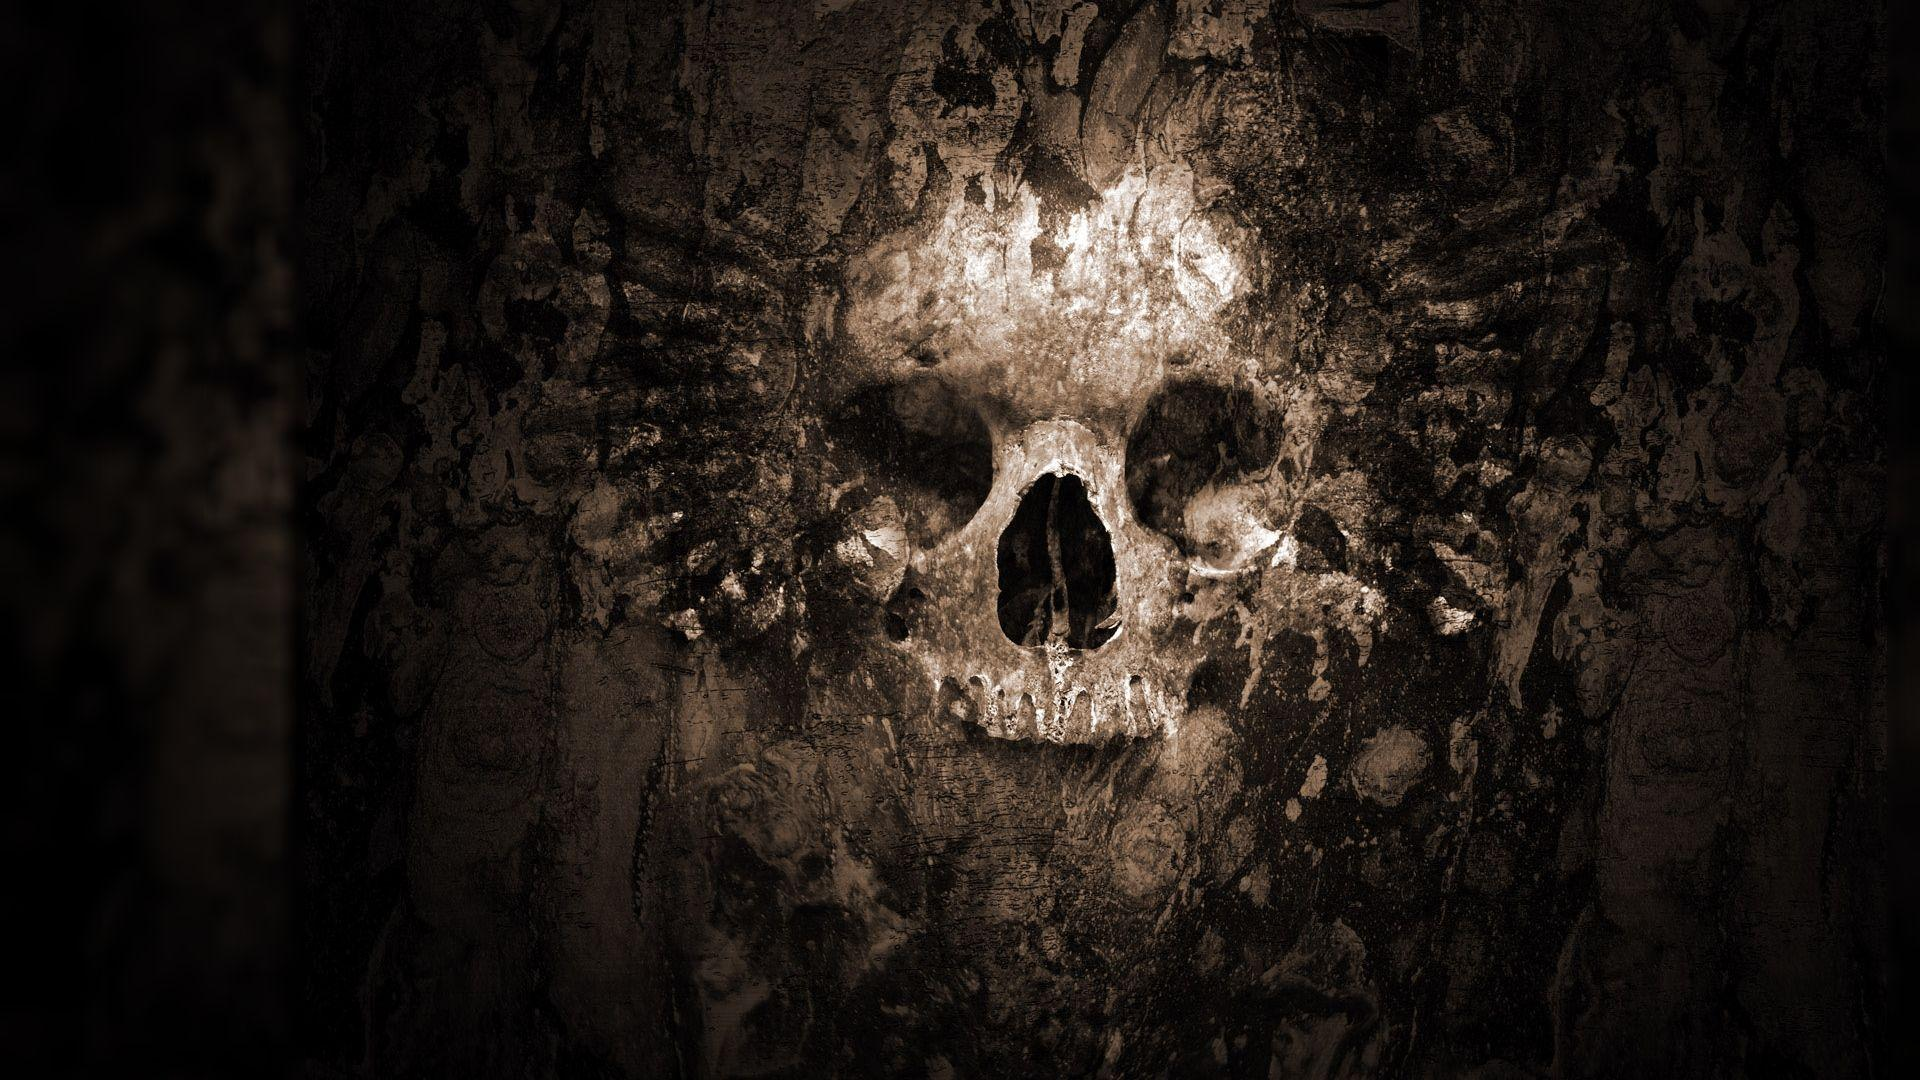 Free Scary Desktop Backgrounds Wallpaper Cave